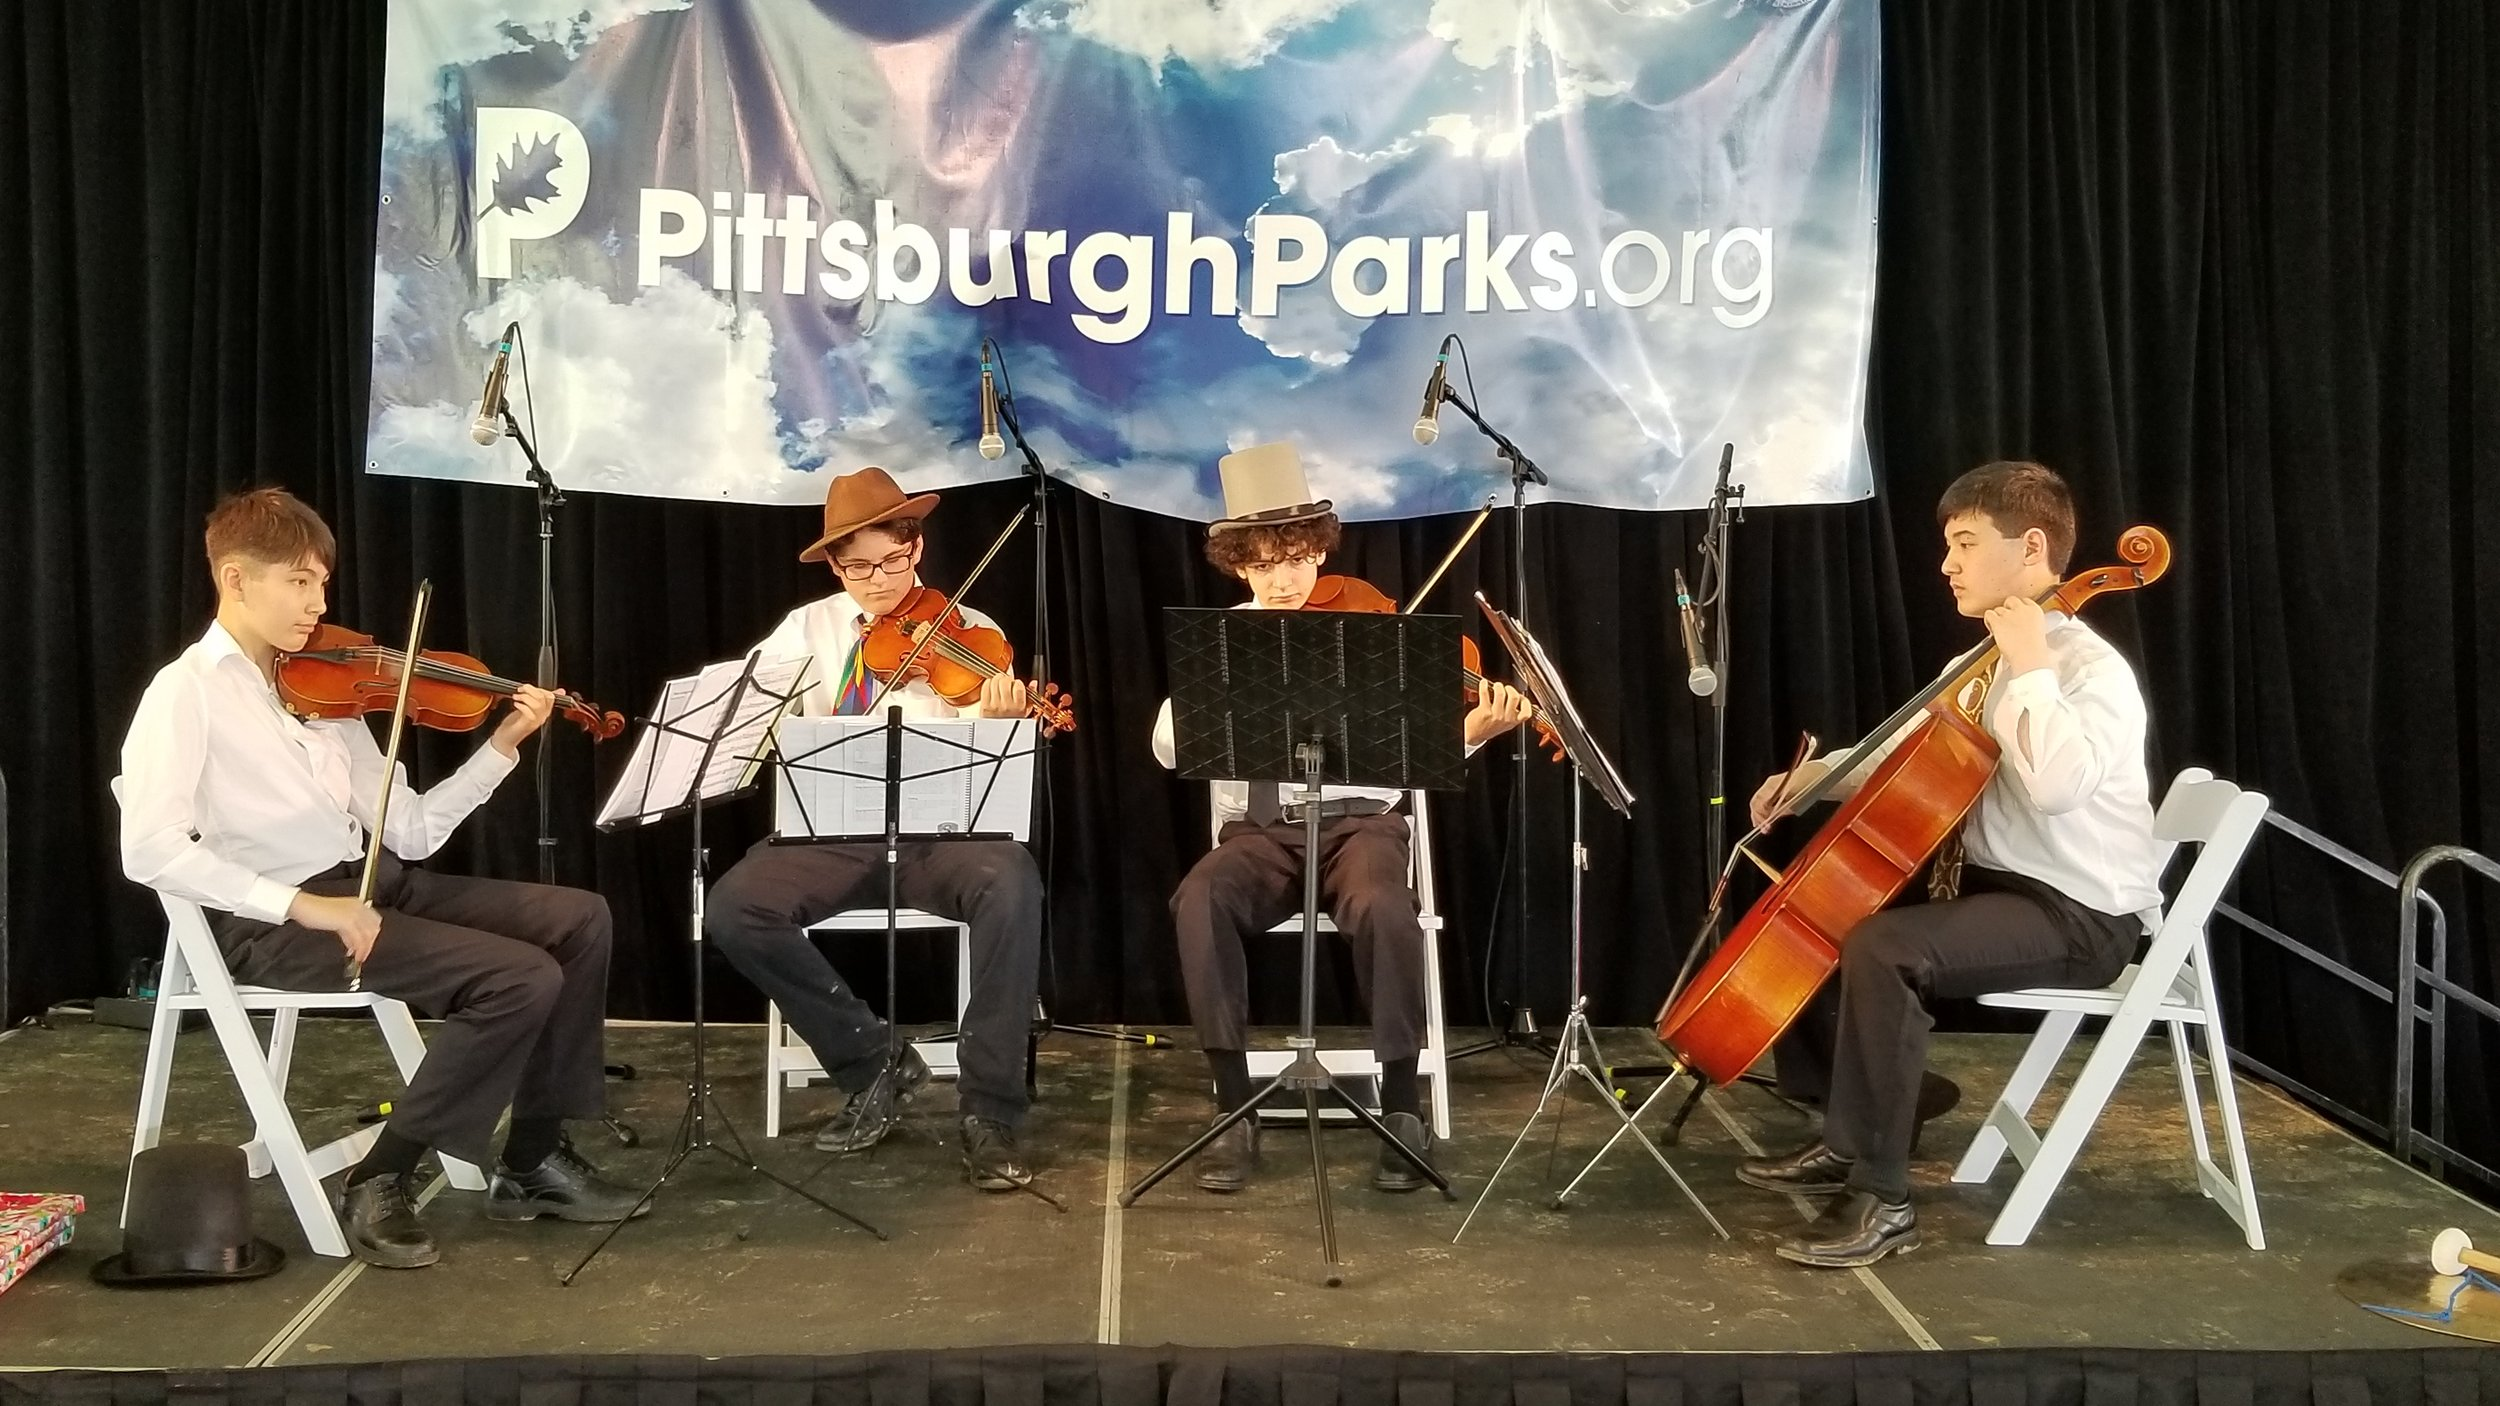 Annual Hat Luncheon - Derby Day, May 2020One of our chamber groups will have the chance to perform for this prestigious, usually-sold-out event, sponsored by the Pittsburgh Parks Conservancy to raise funds to support renovation and maintenance of our city parks.